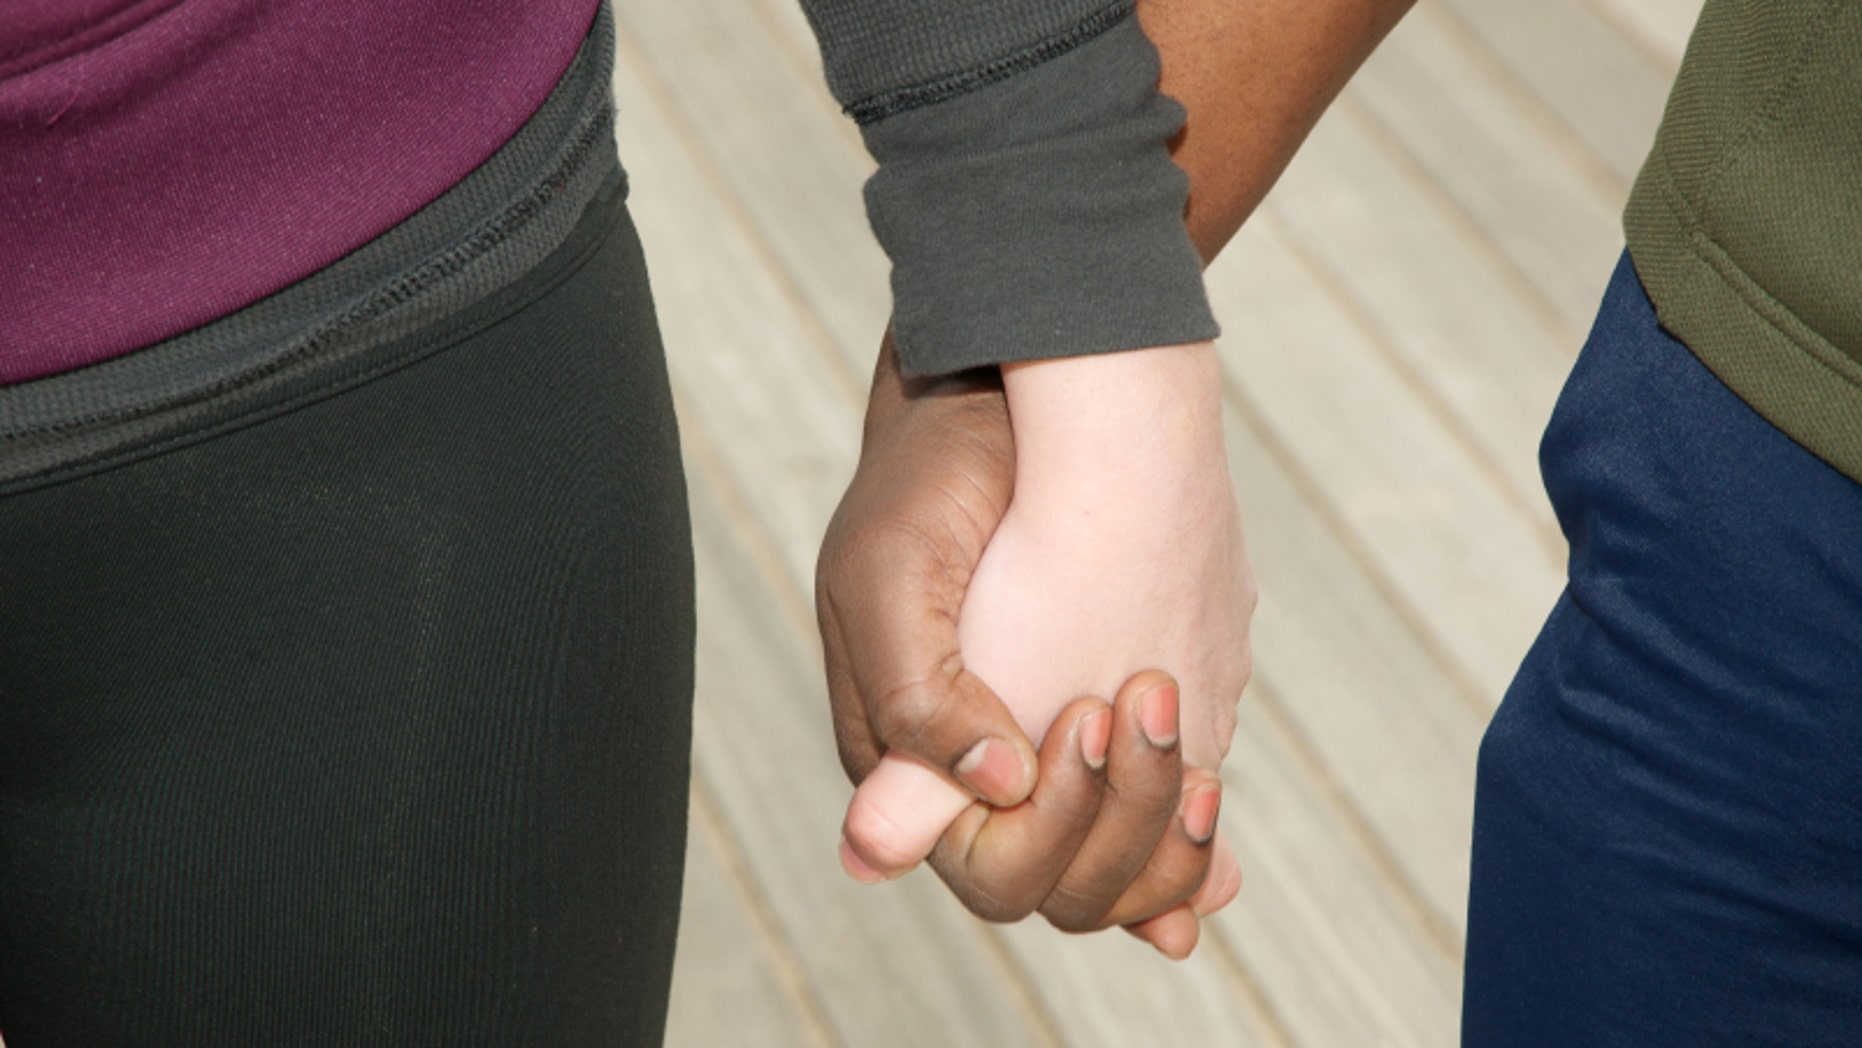 Non sexual touch in therapy